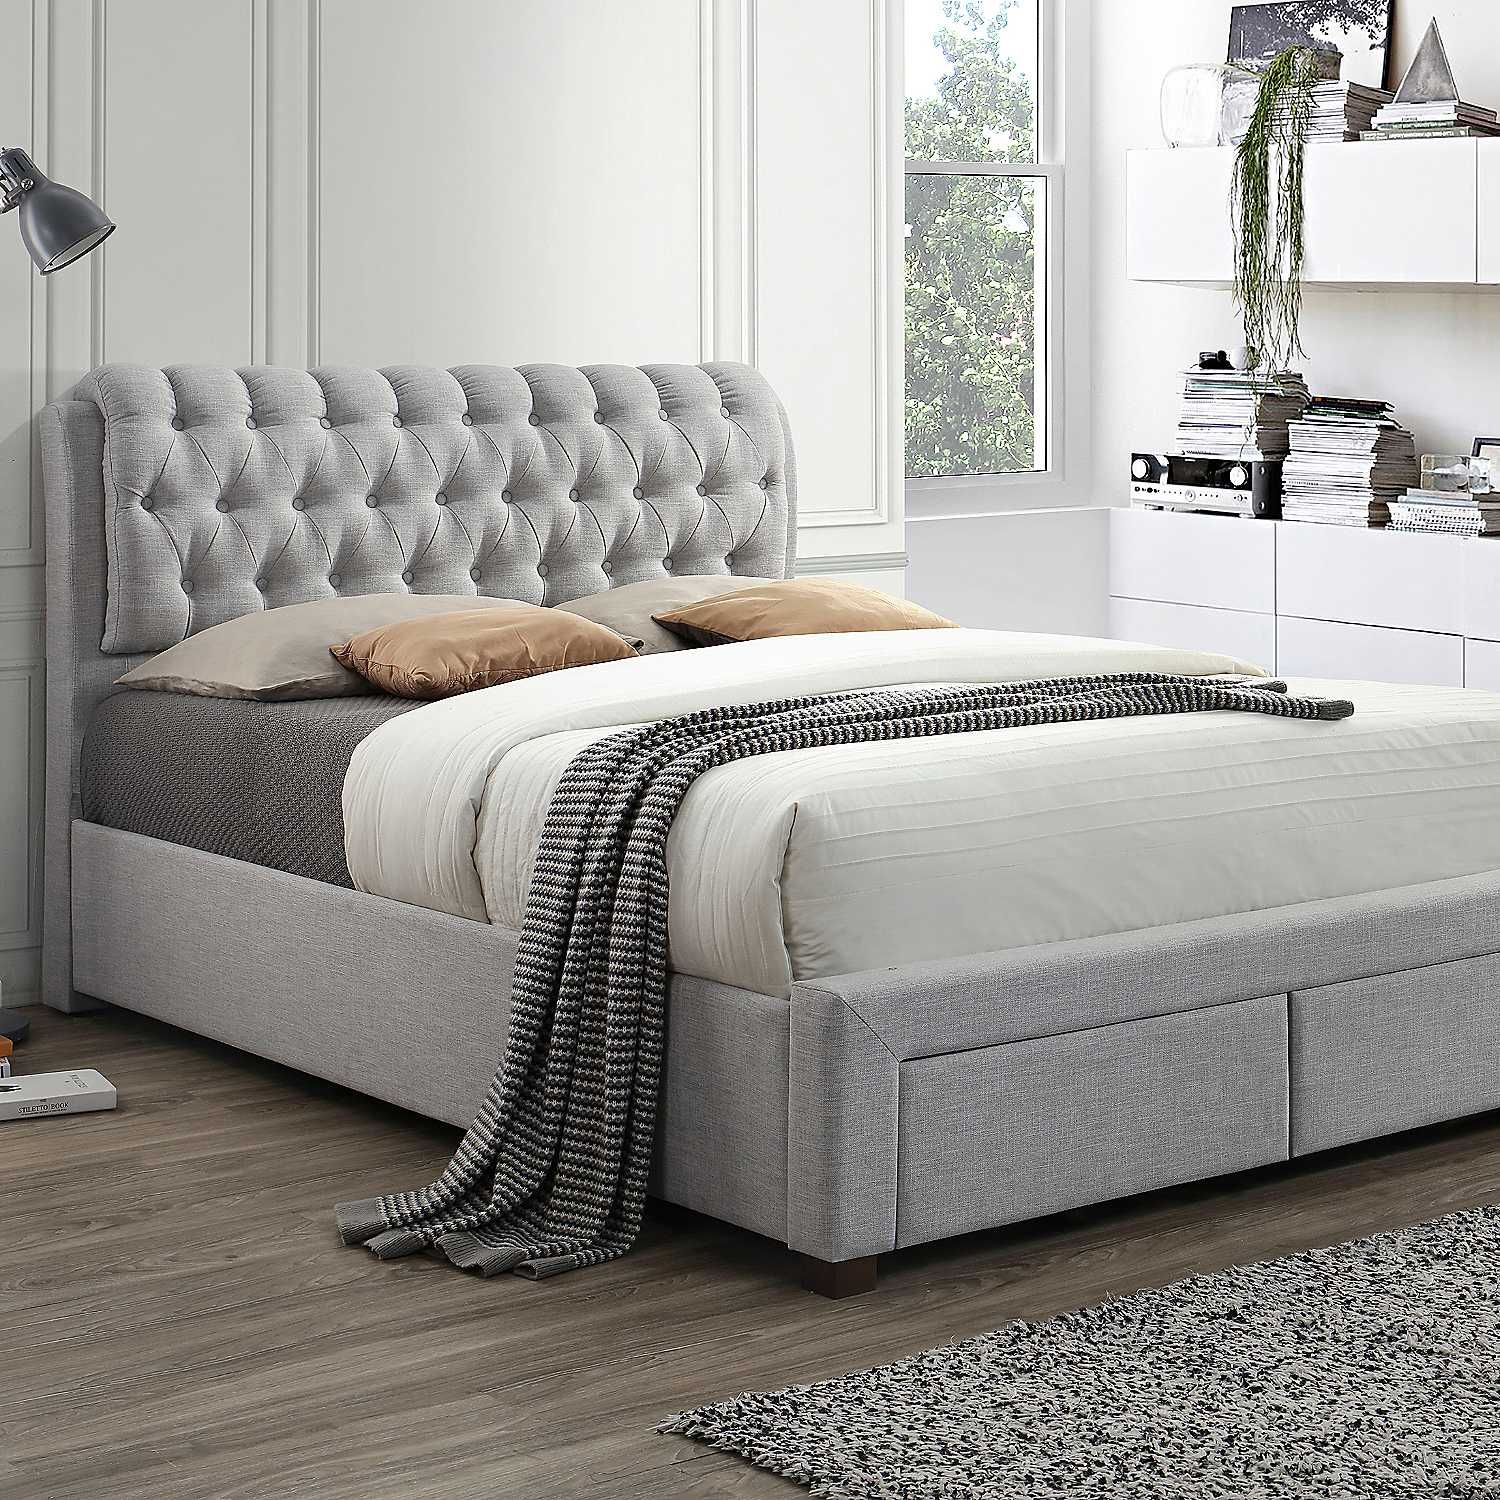 Valentino Deluxe Upholstered 2 Drawer Bed Frame by Birlea